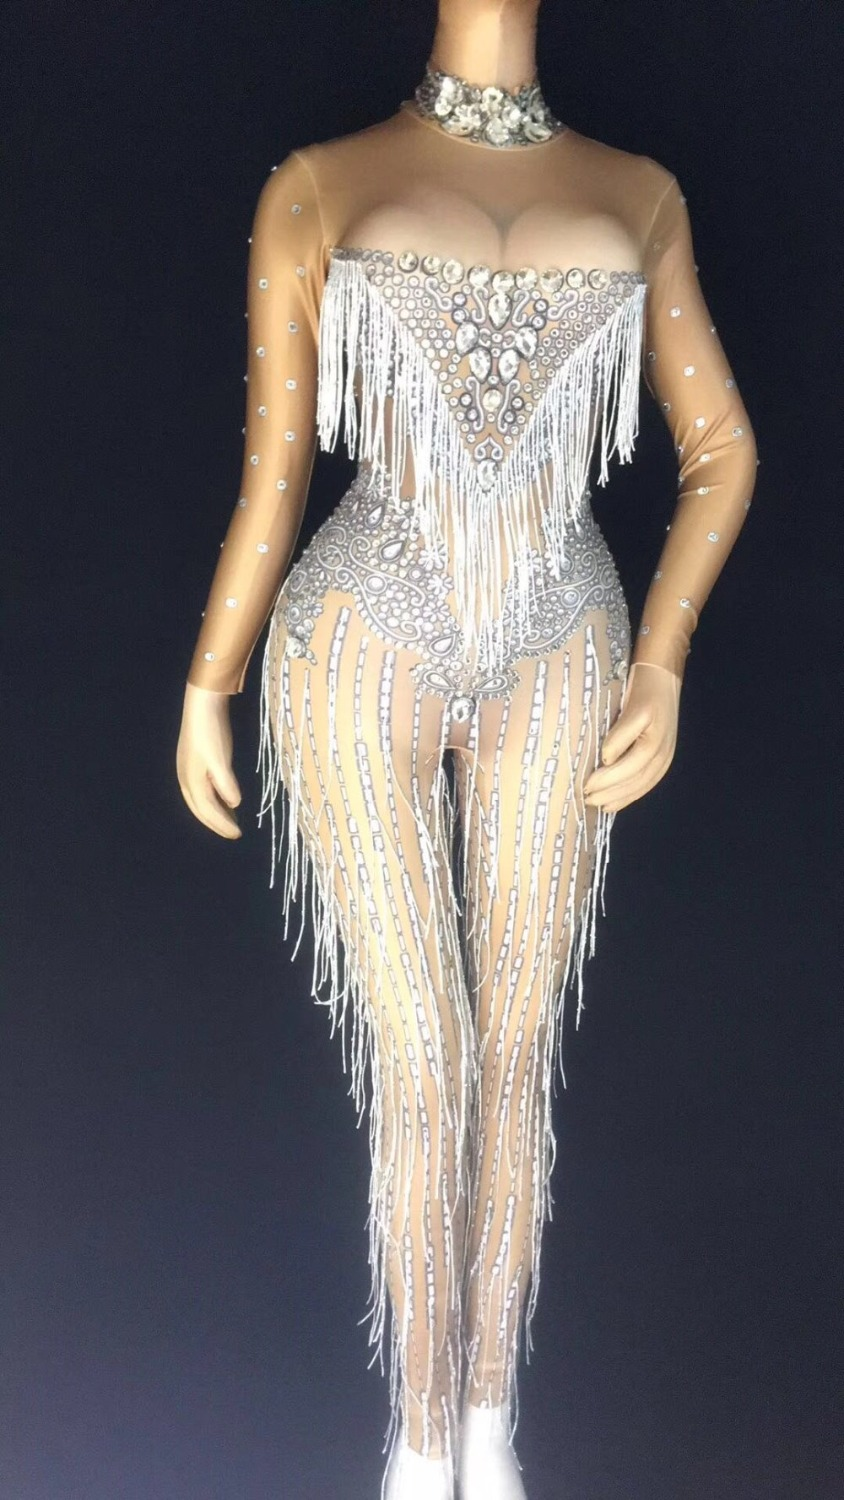 Silver Crystals Tassel Sexy Bodysuit Women Stage Show Dance Jumpsuit Costume One-piece Fringes Stretch Spandex Rompers Clothes